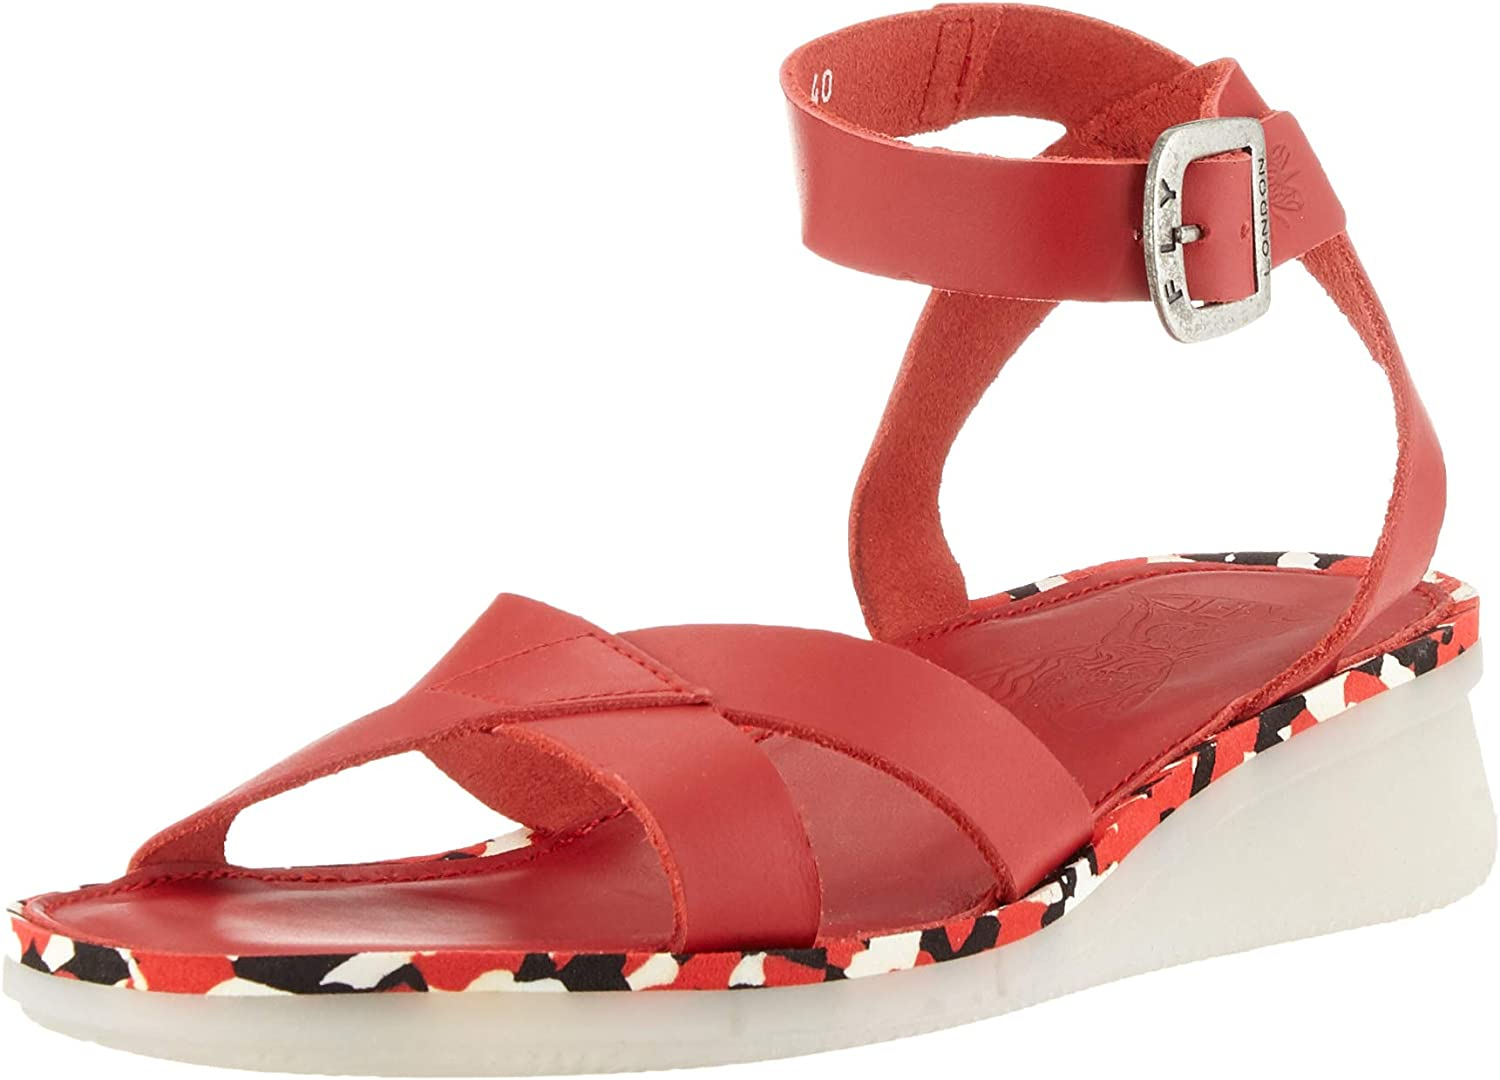 FLY London Women's Sandals Strap ! Super beauty product restock quality top! Ankle Genuine Free Shipping